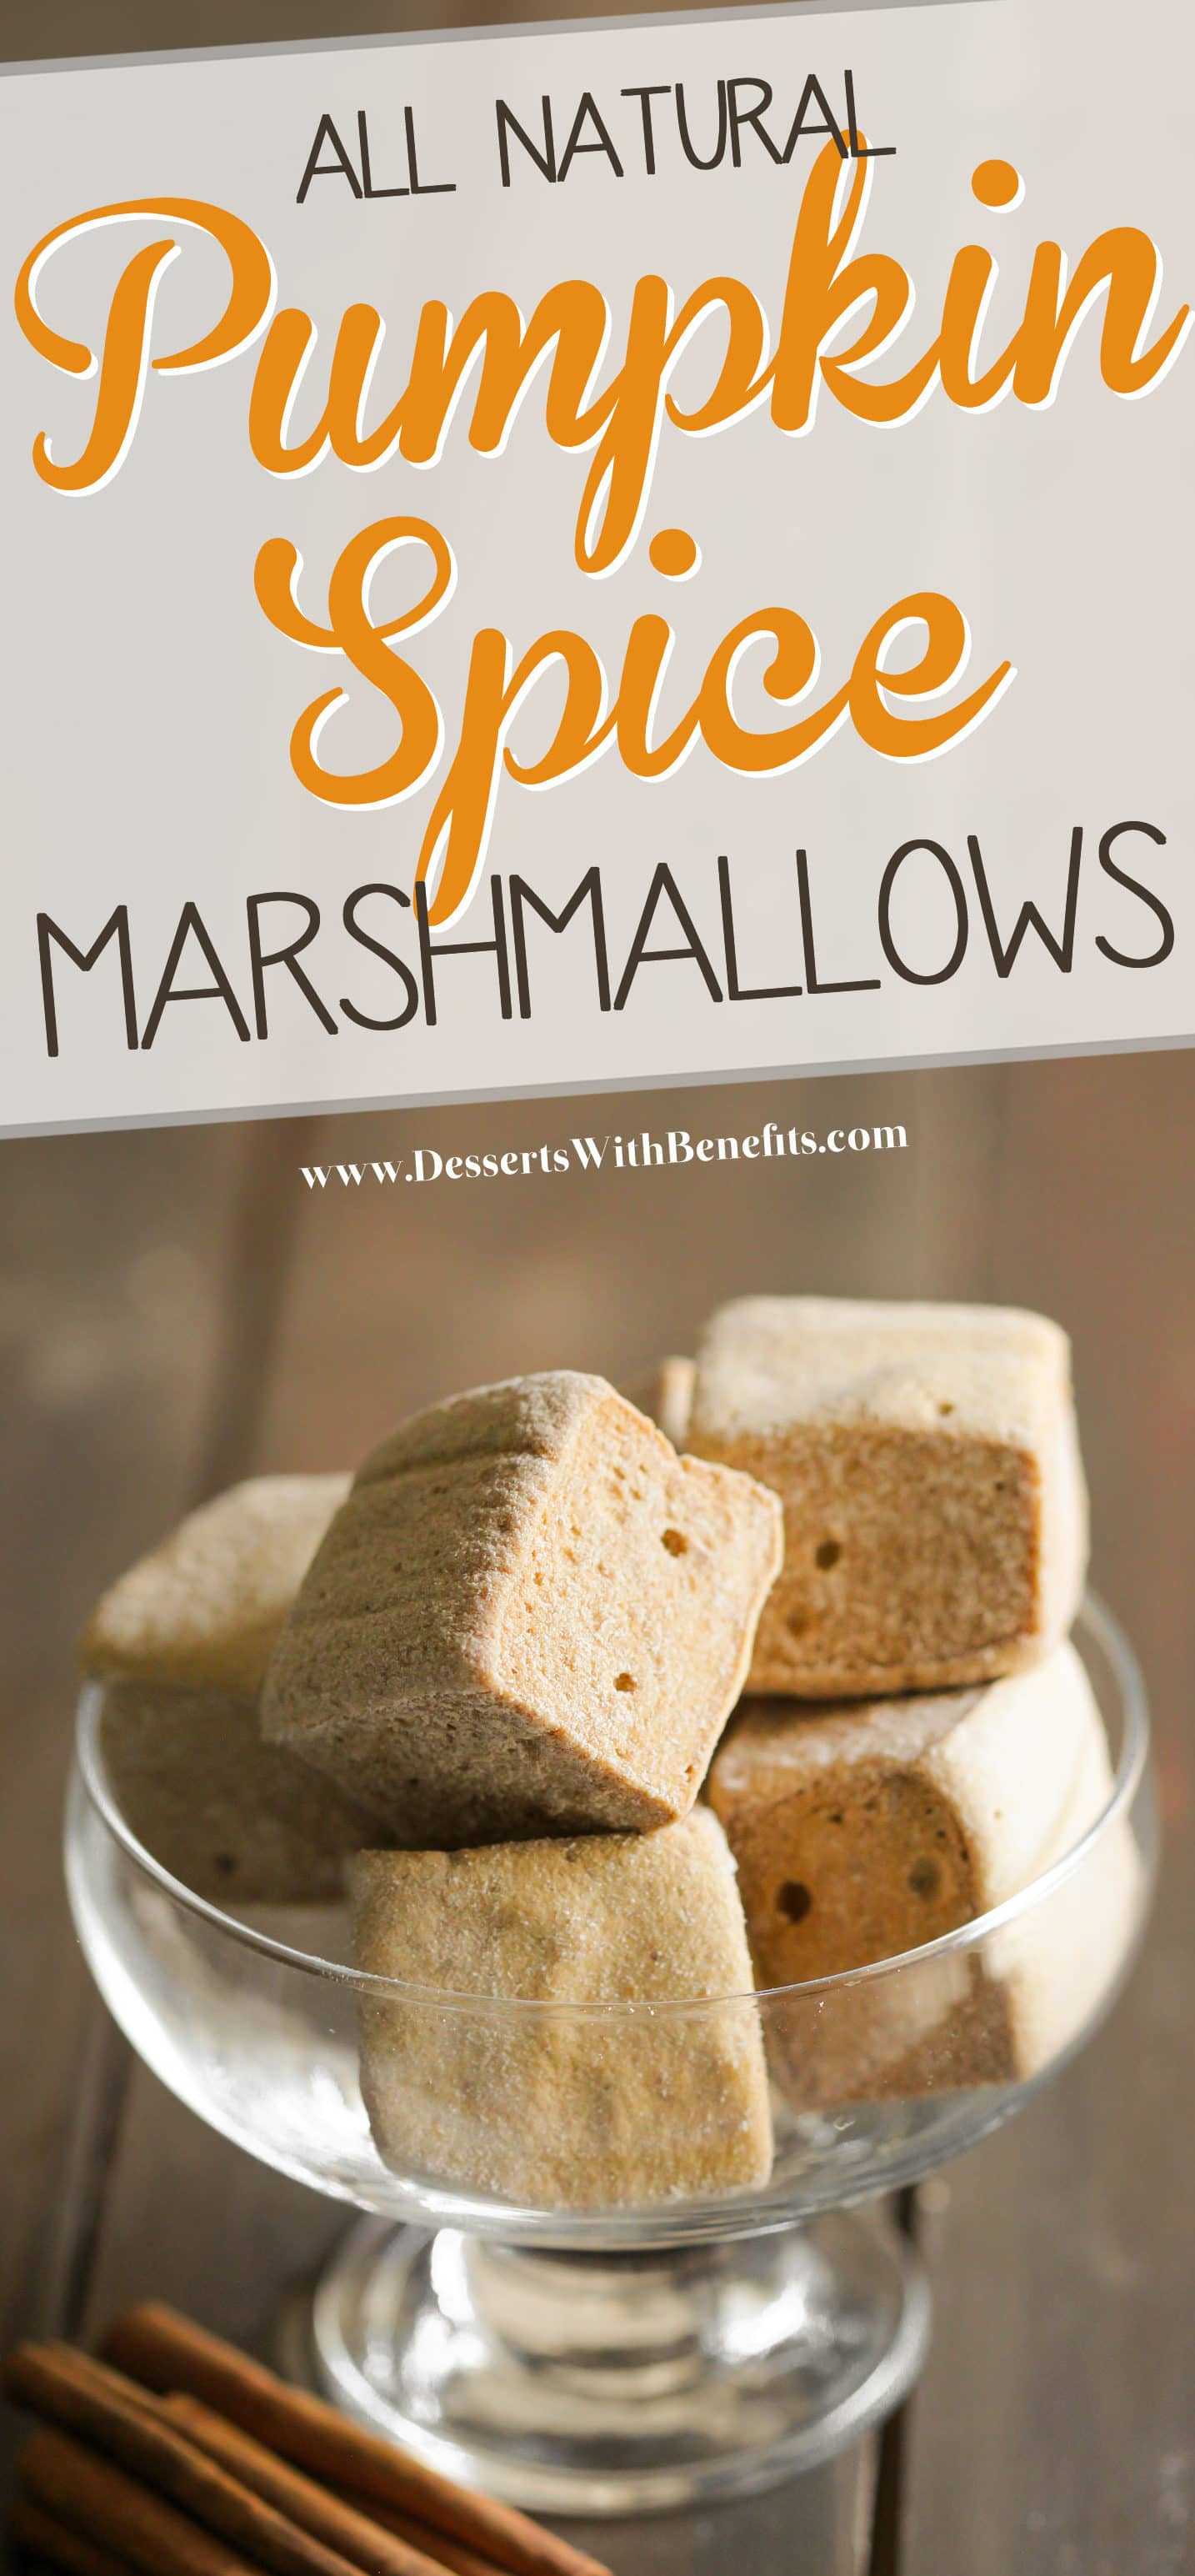 These Healthy Homemade Pumpkin Spice Marshmallows are the fluffiest, most flavorful, and FUN mallows I've ever made! Delicious and packed with spices, such as cinnamon, ginger, and nutmeg. You'll never believe these are refined sugar free, fat free, gluten free, and all natural! Healthy Dessert Recipes at the Desserts With Benefits Blog (www.DessertsWithBenefits.com)